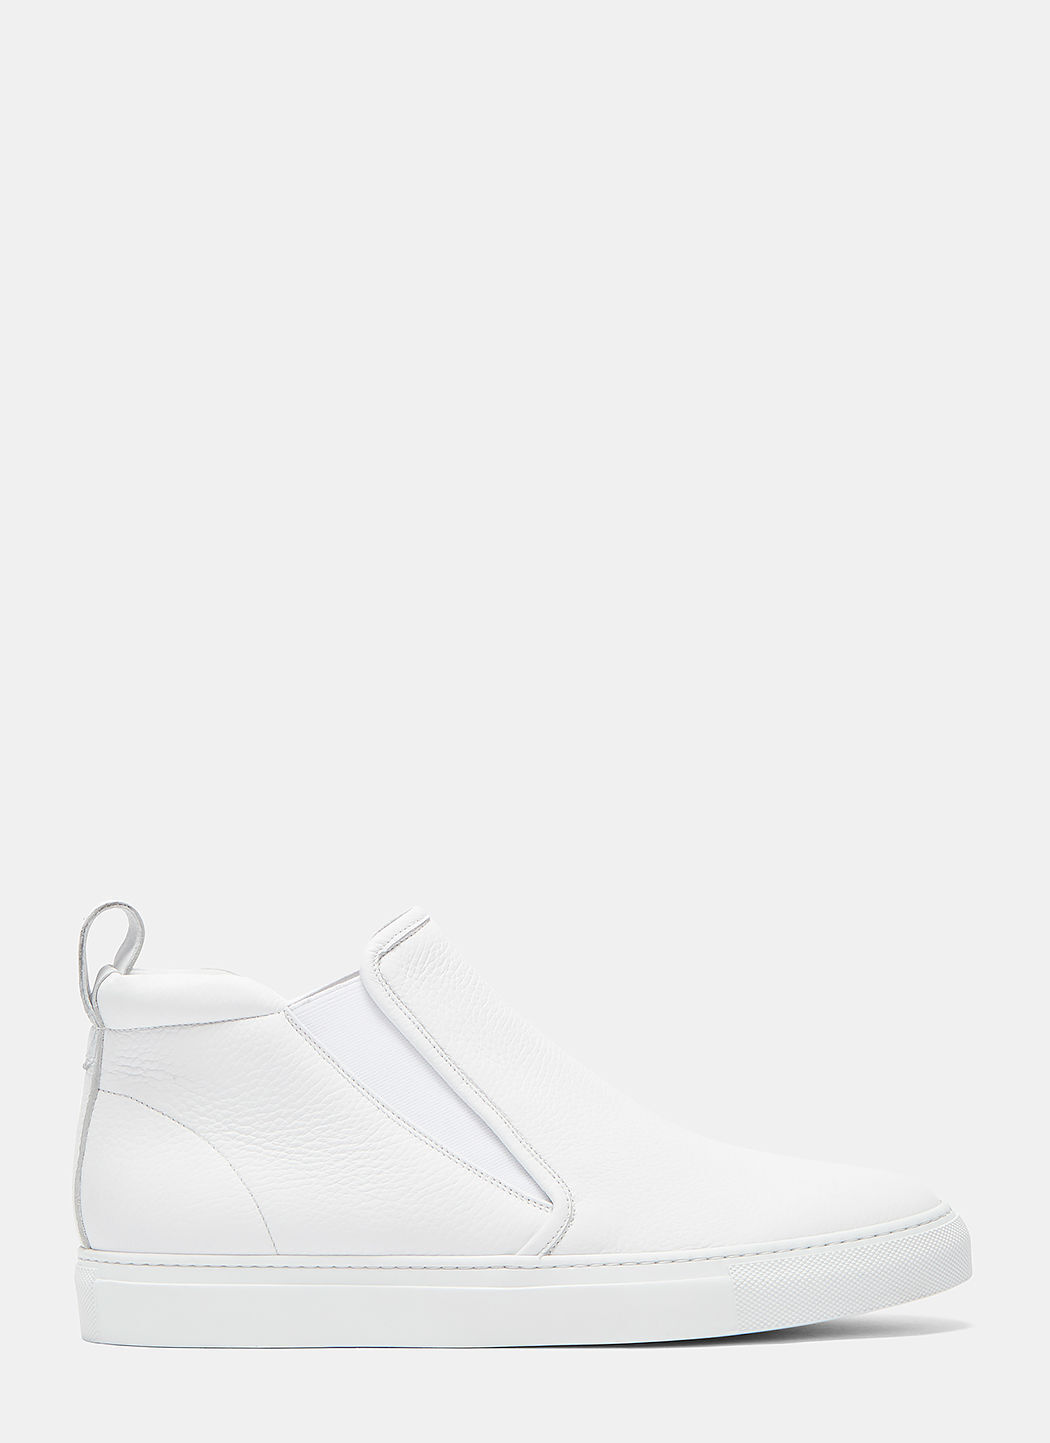 AIEZEN Men's High-Top Slip-On Grained Leather Sneakers in White